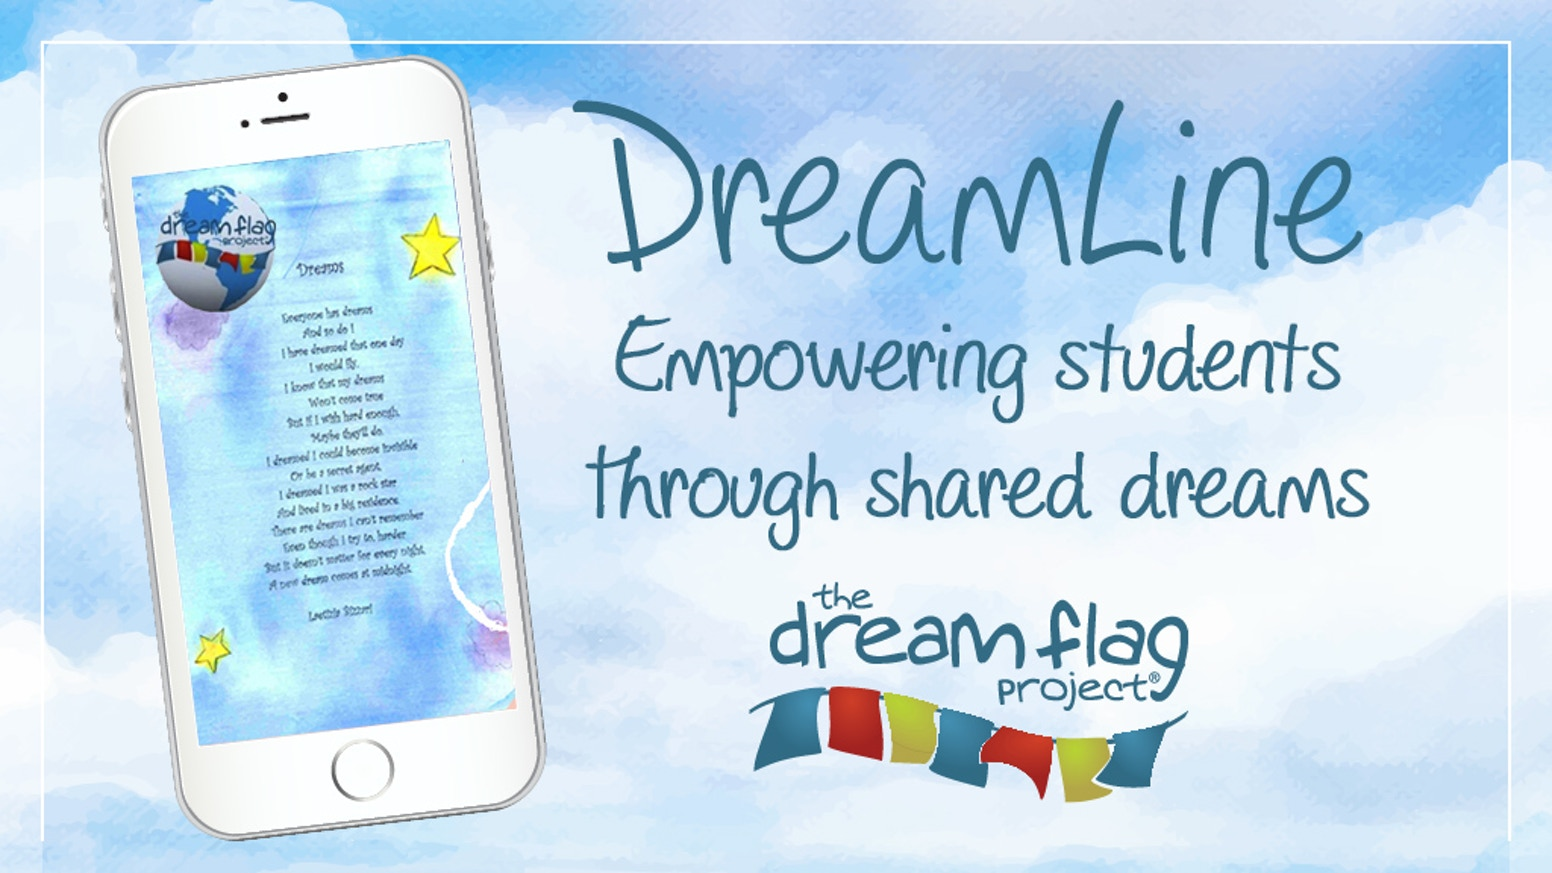 Creating a worldwide community of students, connected through their goals for the future and empowered through their shared dreams.